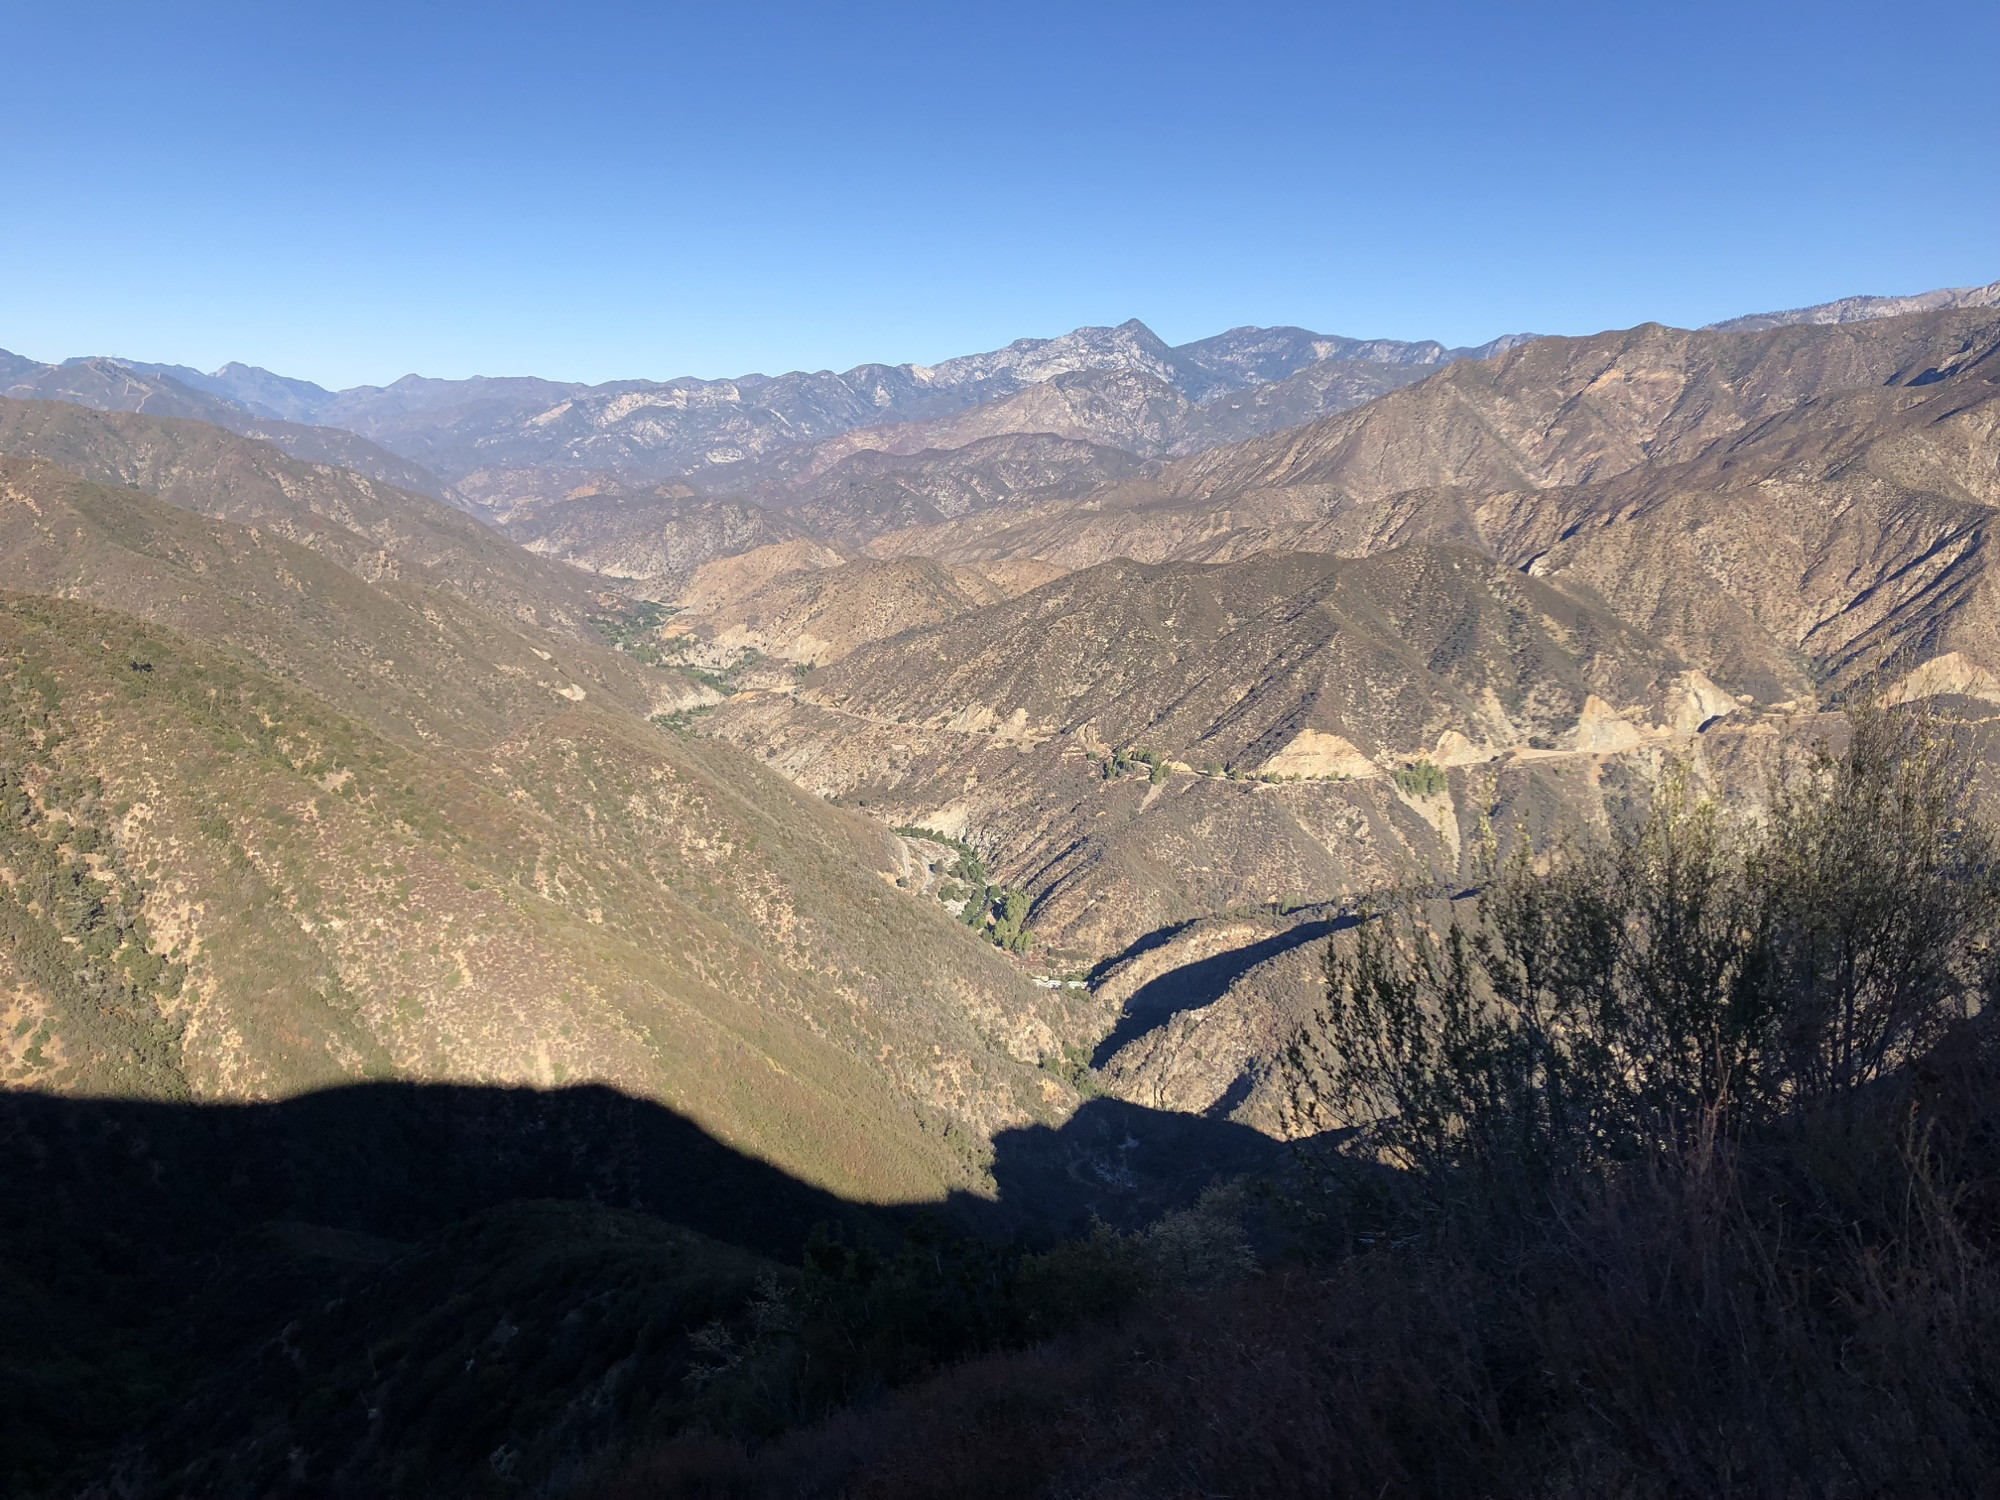 looking down into the valley